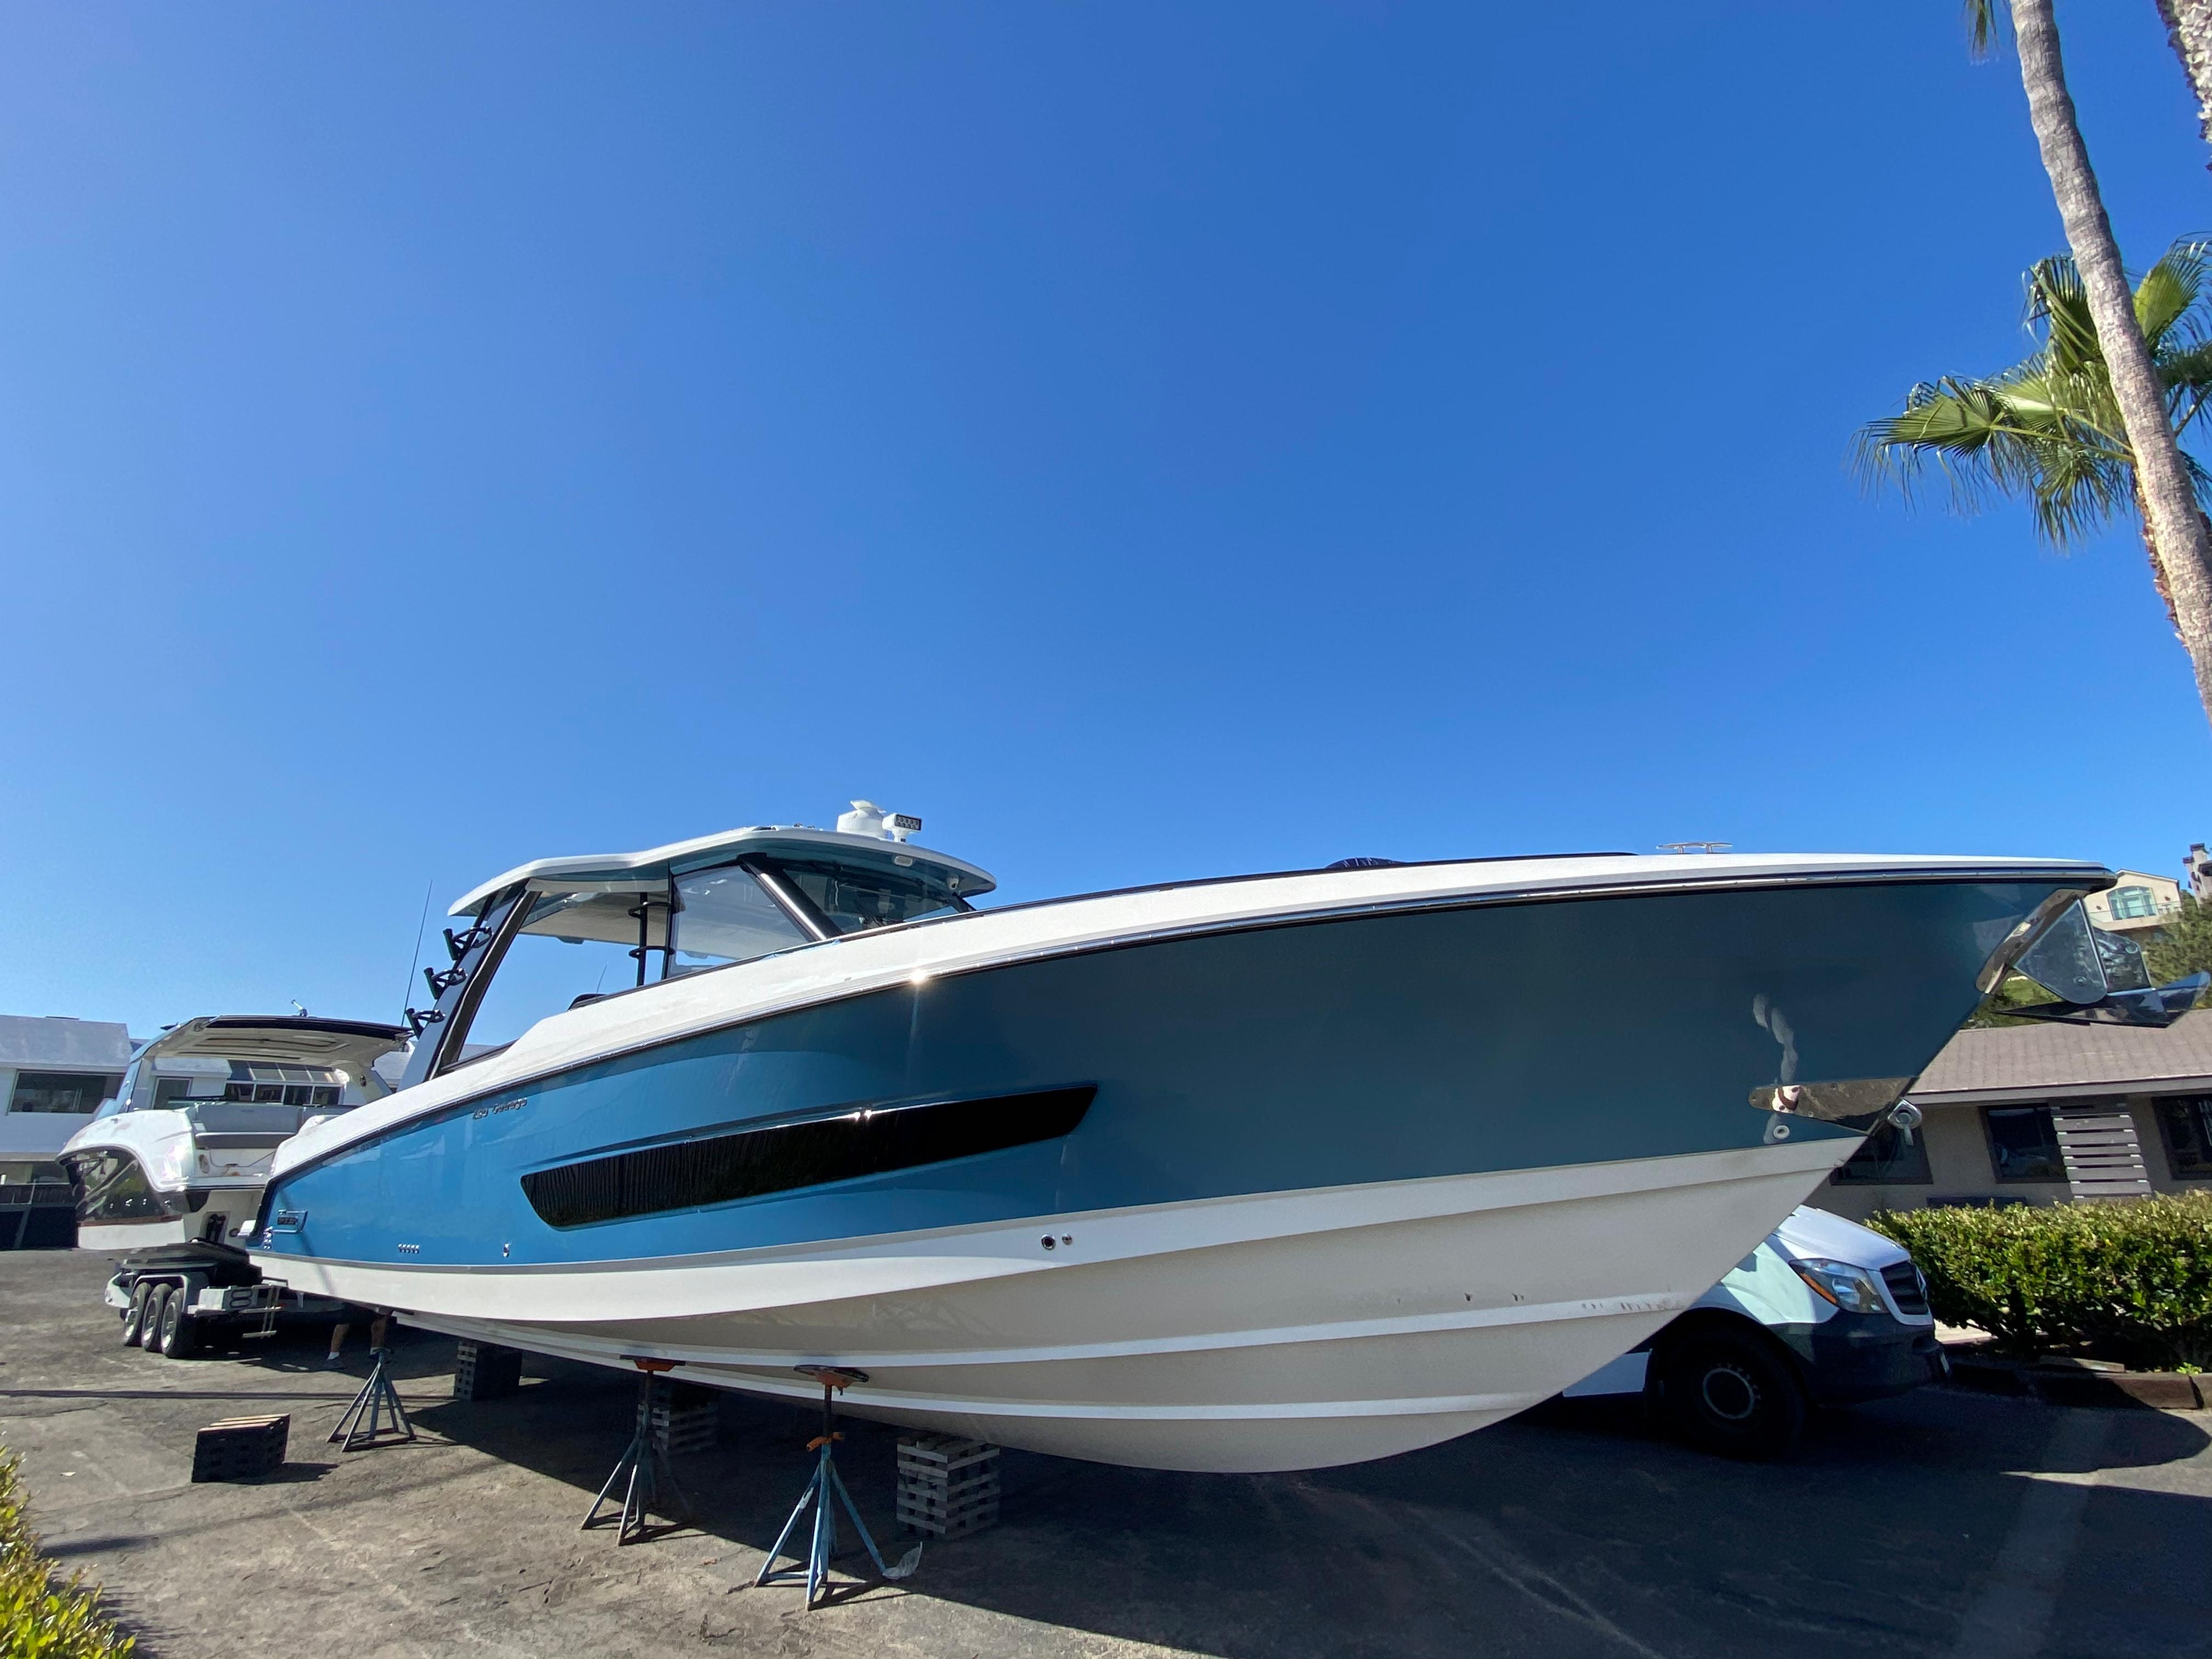 2021 Boston Whaler 420 Outrage #BW1149K inventory image at Sun Country Coastal in Newport Beach